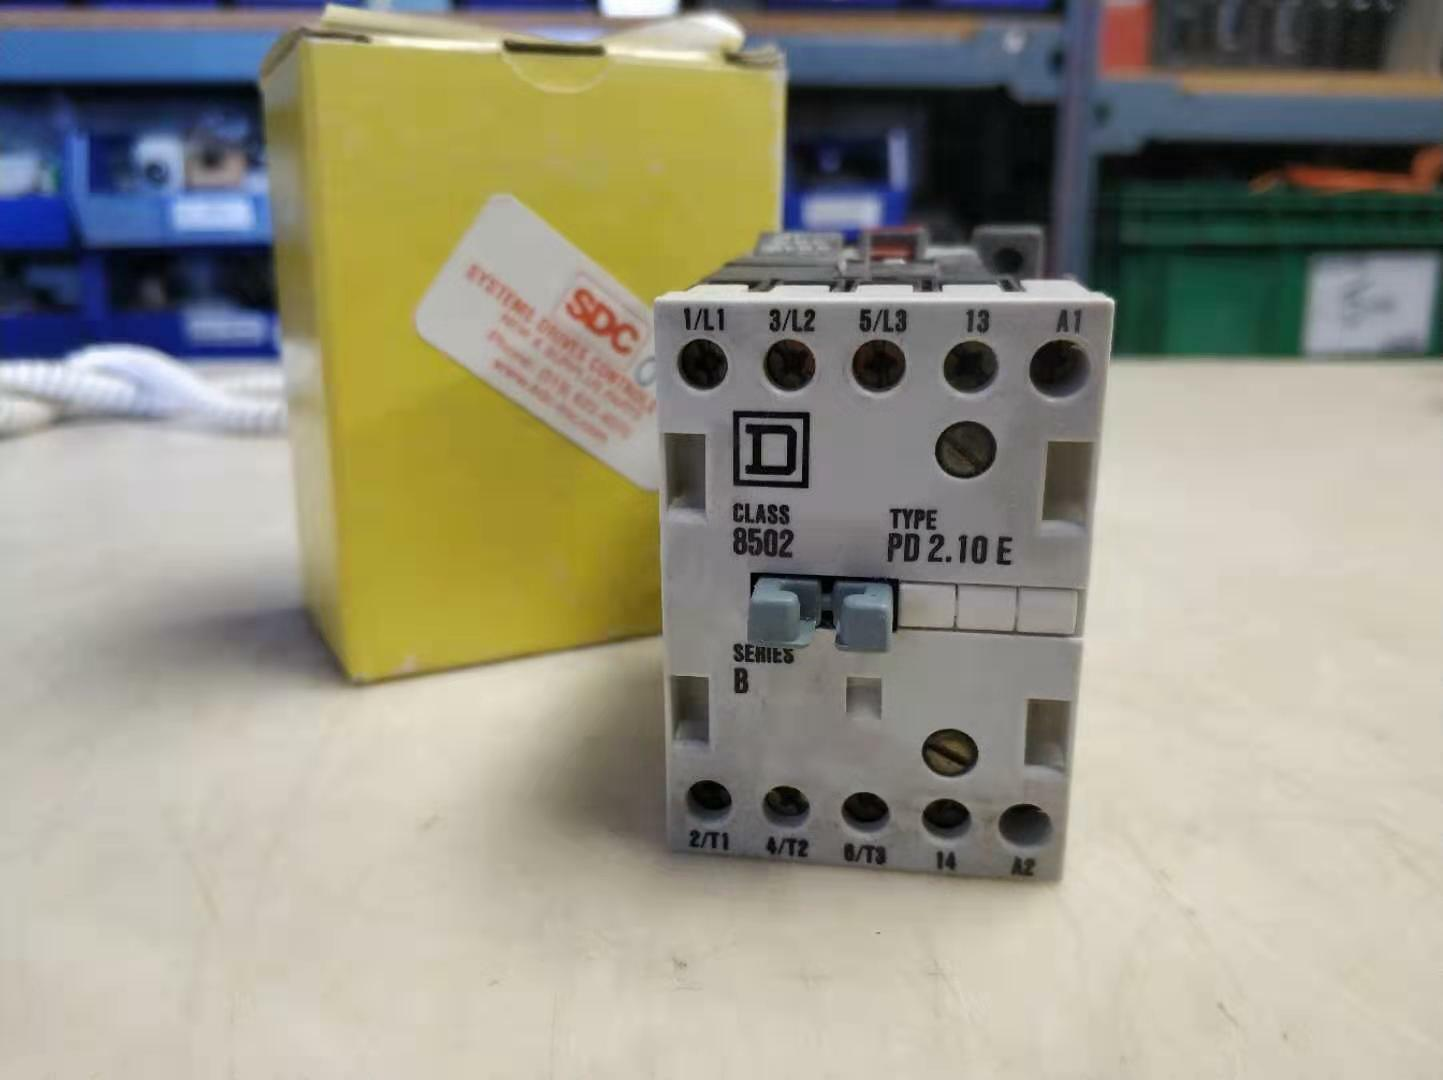 Marvelous Square D 8502Pd2 10E Contactor Series B 20A 660Vac 3Ph 7 5Hp New Wiring 101 Orsalhahutechinfo